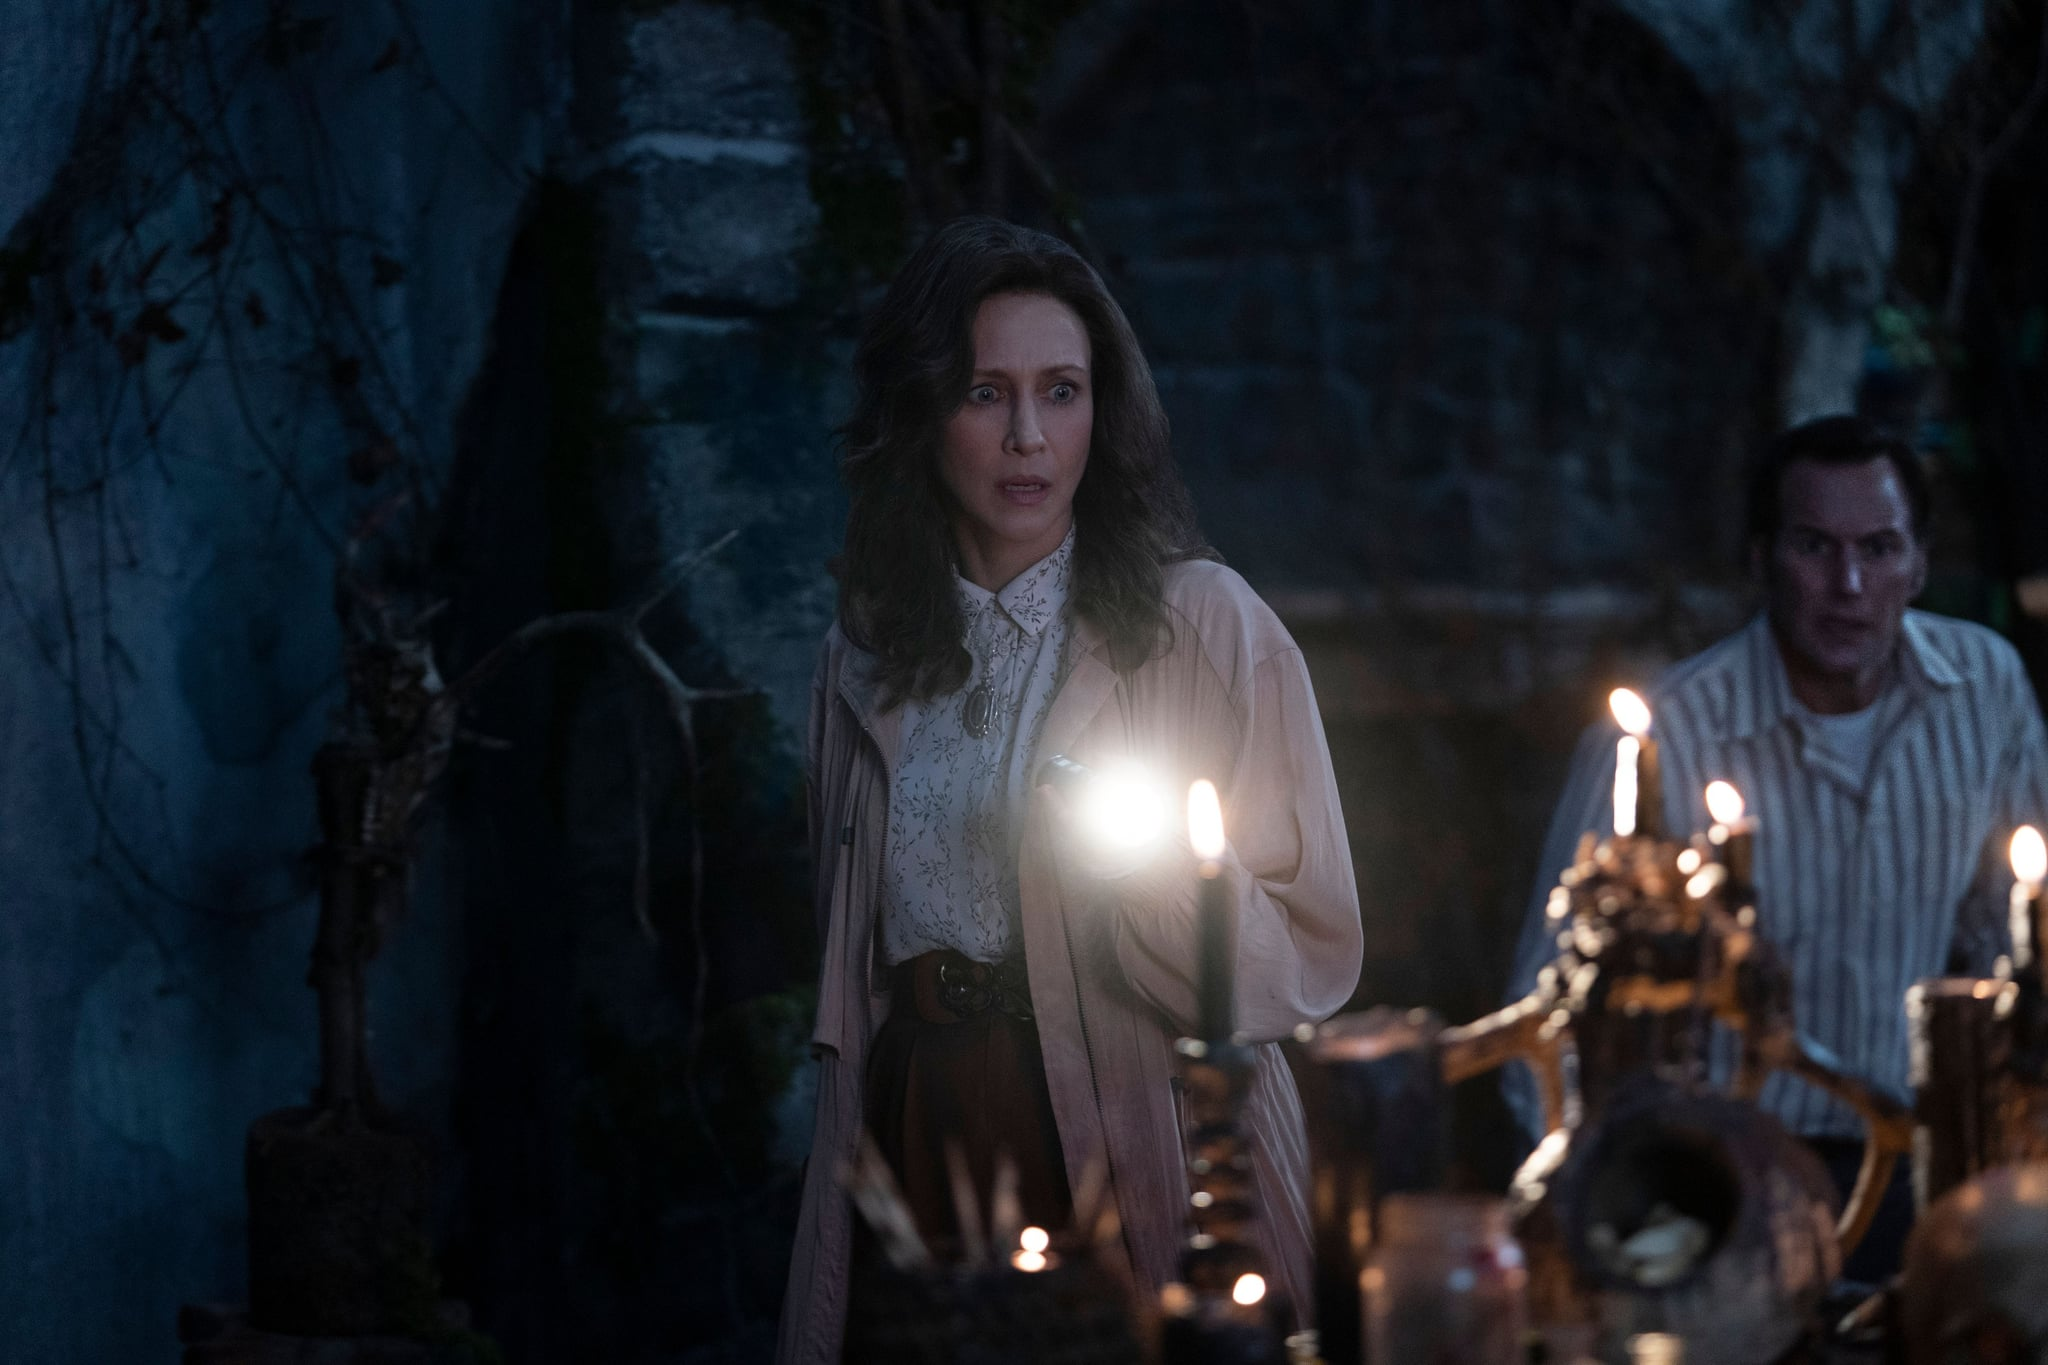 THE CONJURING: THE DEVIL MADE ME DO IT, from left: Vera Farmiga, Patrick Wilson, 2021. ph: Ben Rothstein /  Warner Bros. / Courtesy Everett Collection